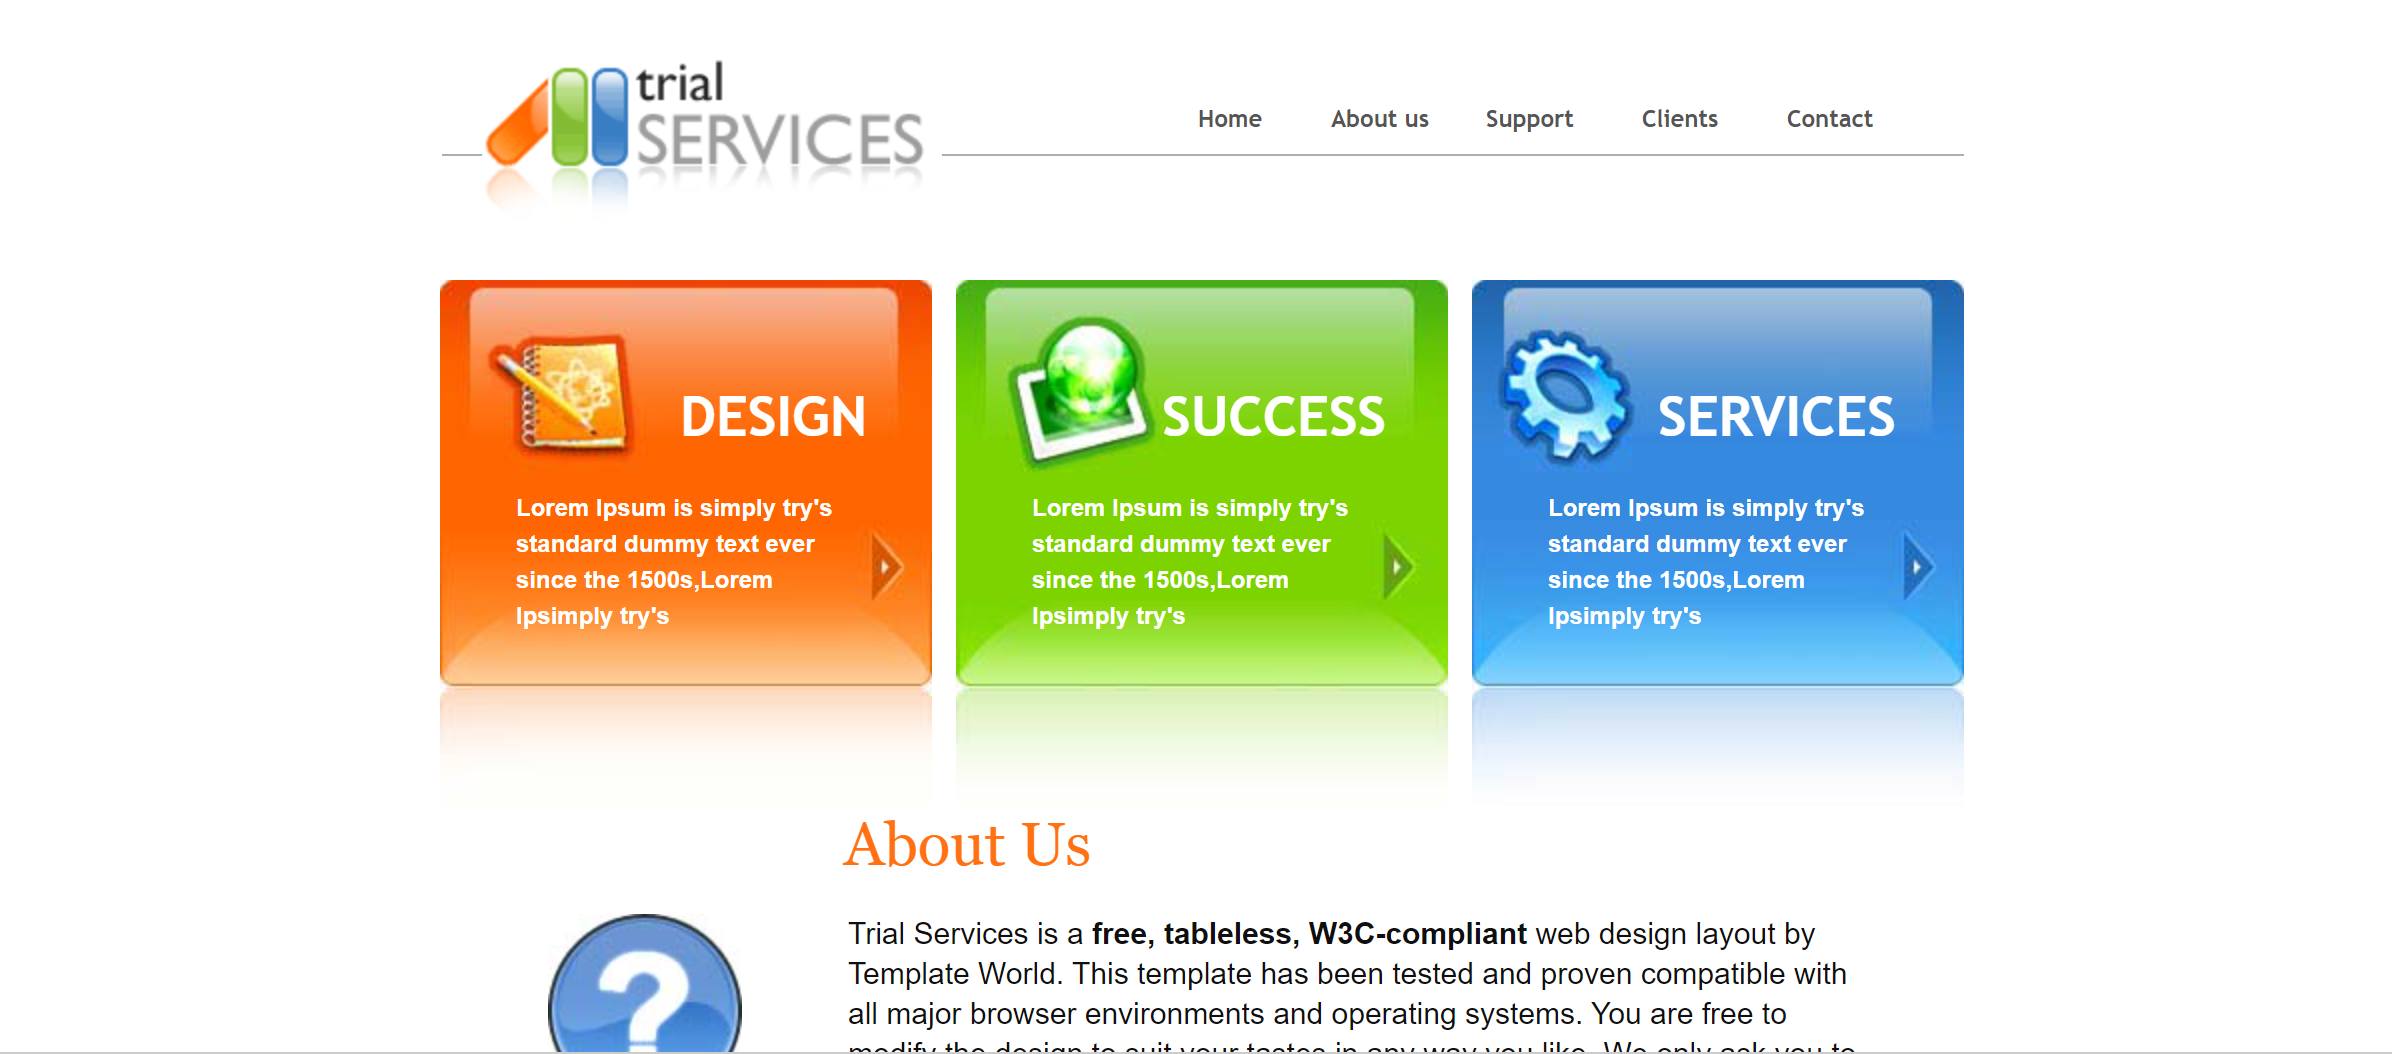 TRIAL SERVICES